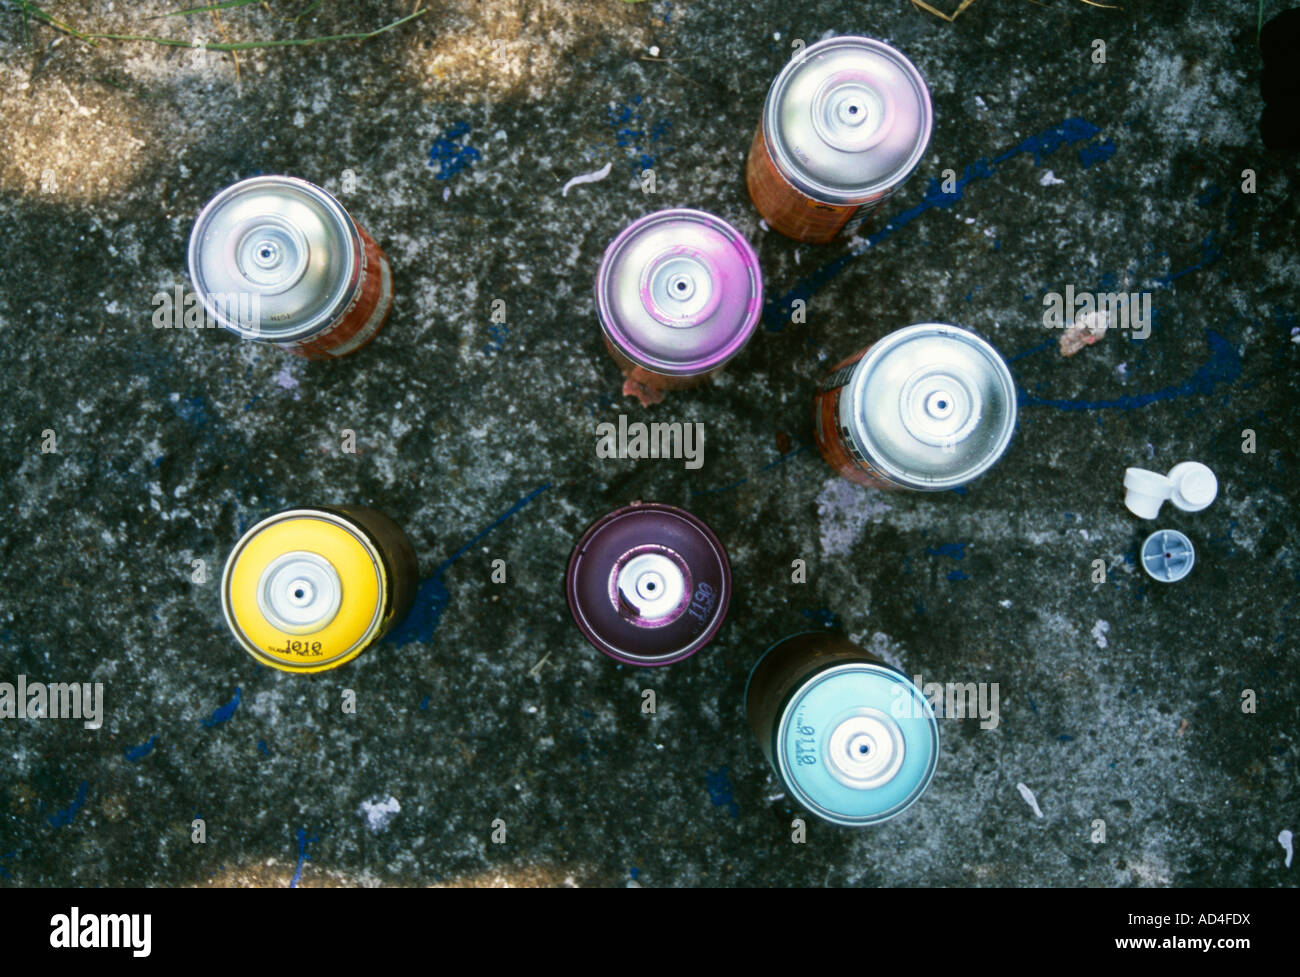 Cans of spray paint from above - Stock Image